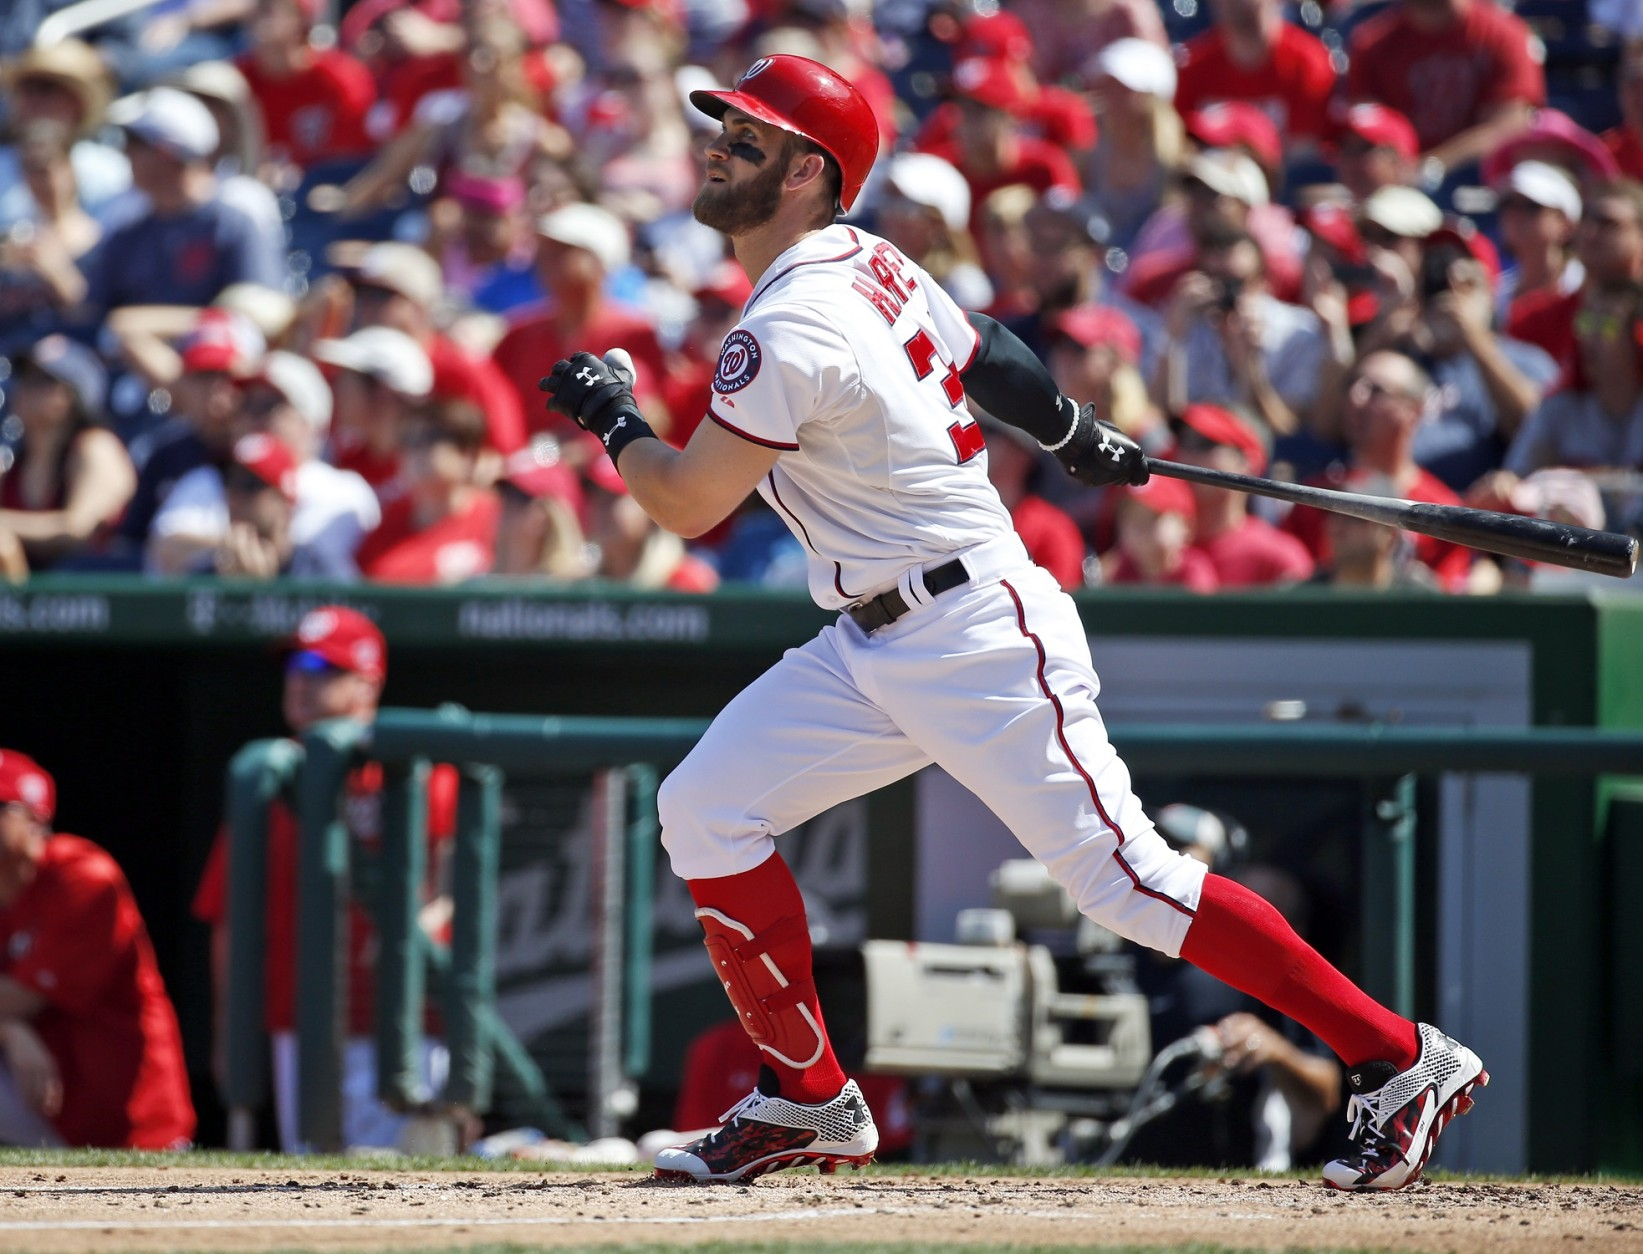 Nats' Harper a finalist for NL MVP